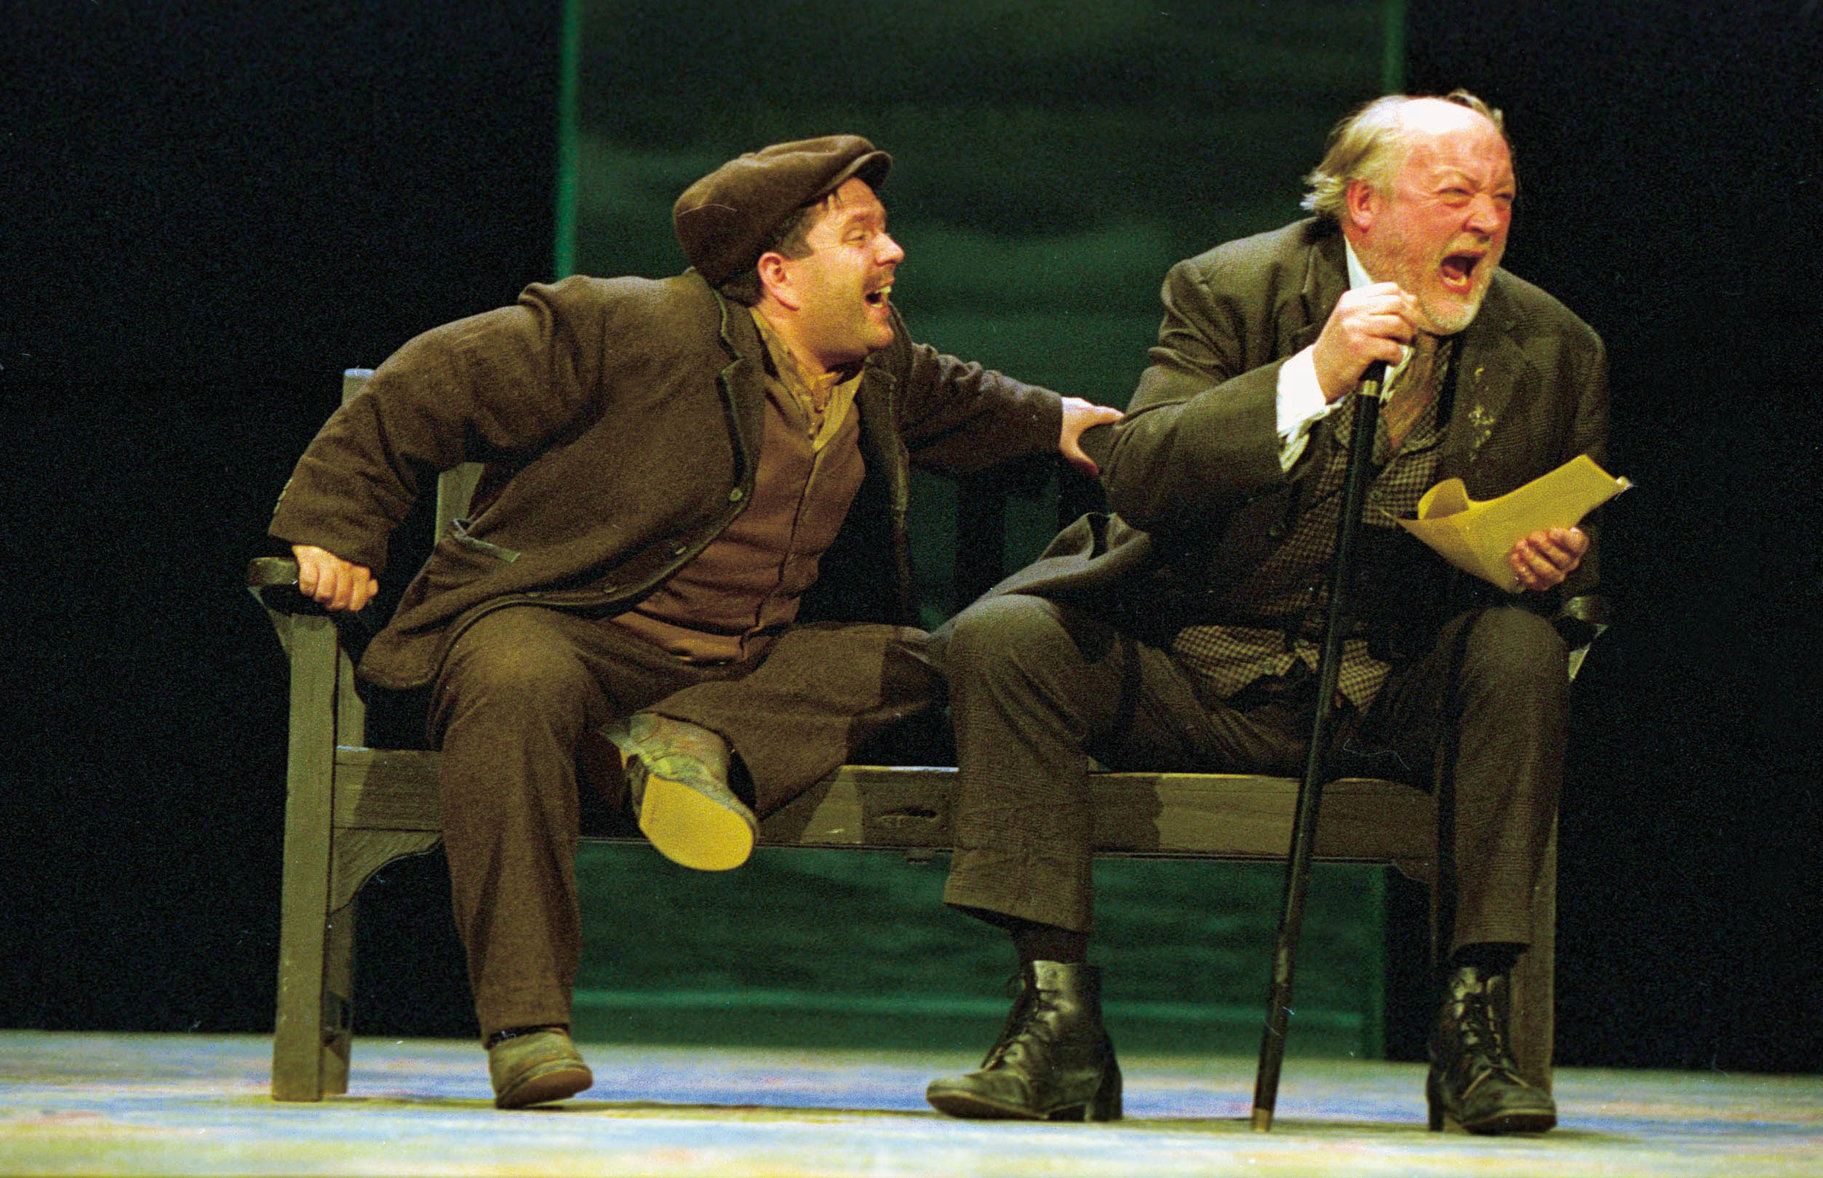 Fabian (left) and Sir Toby (right) sitting on a bench, laughing at the contents of a letter